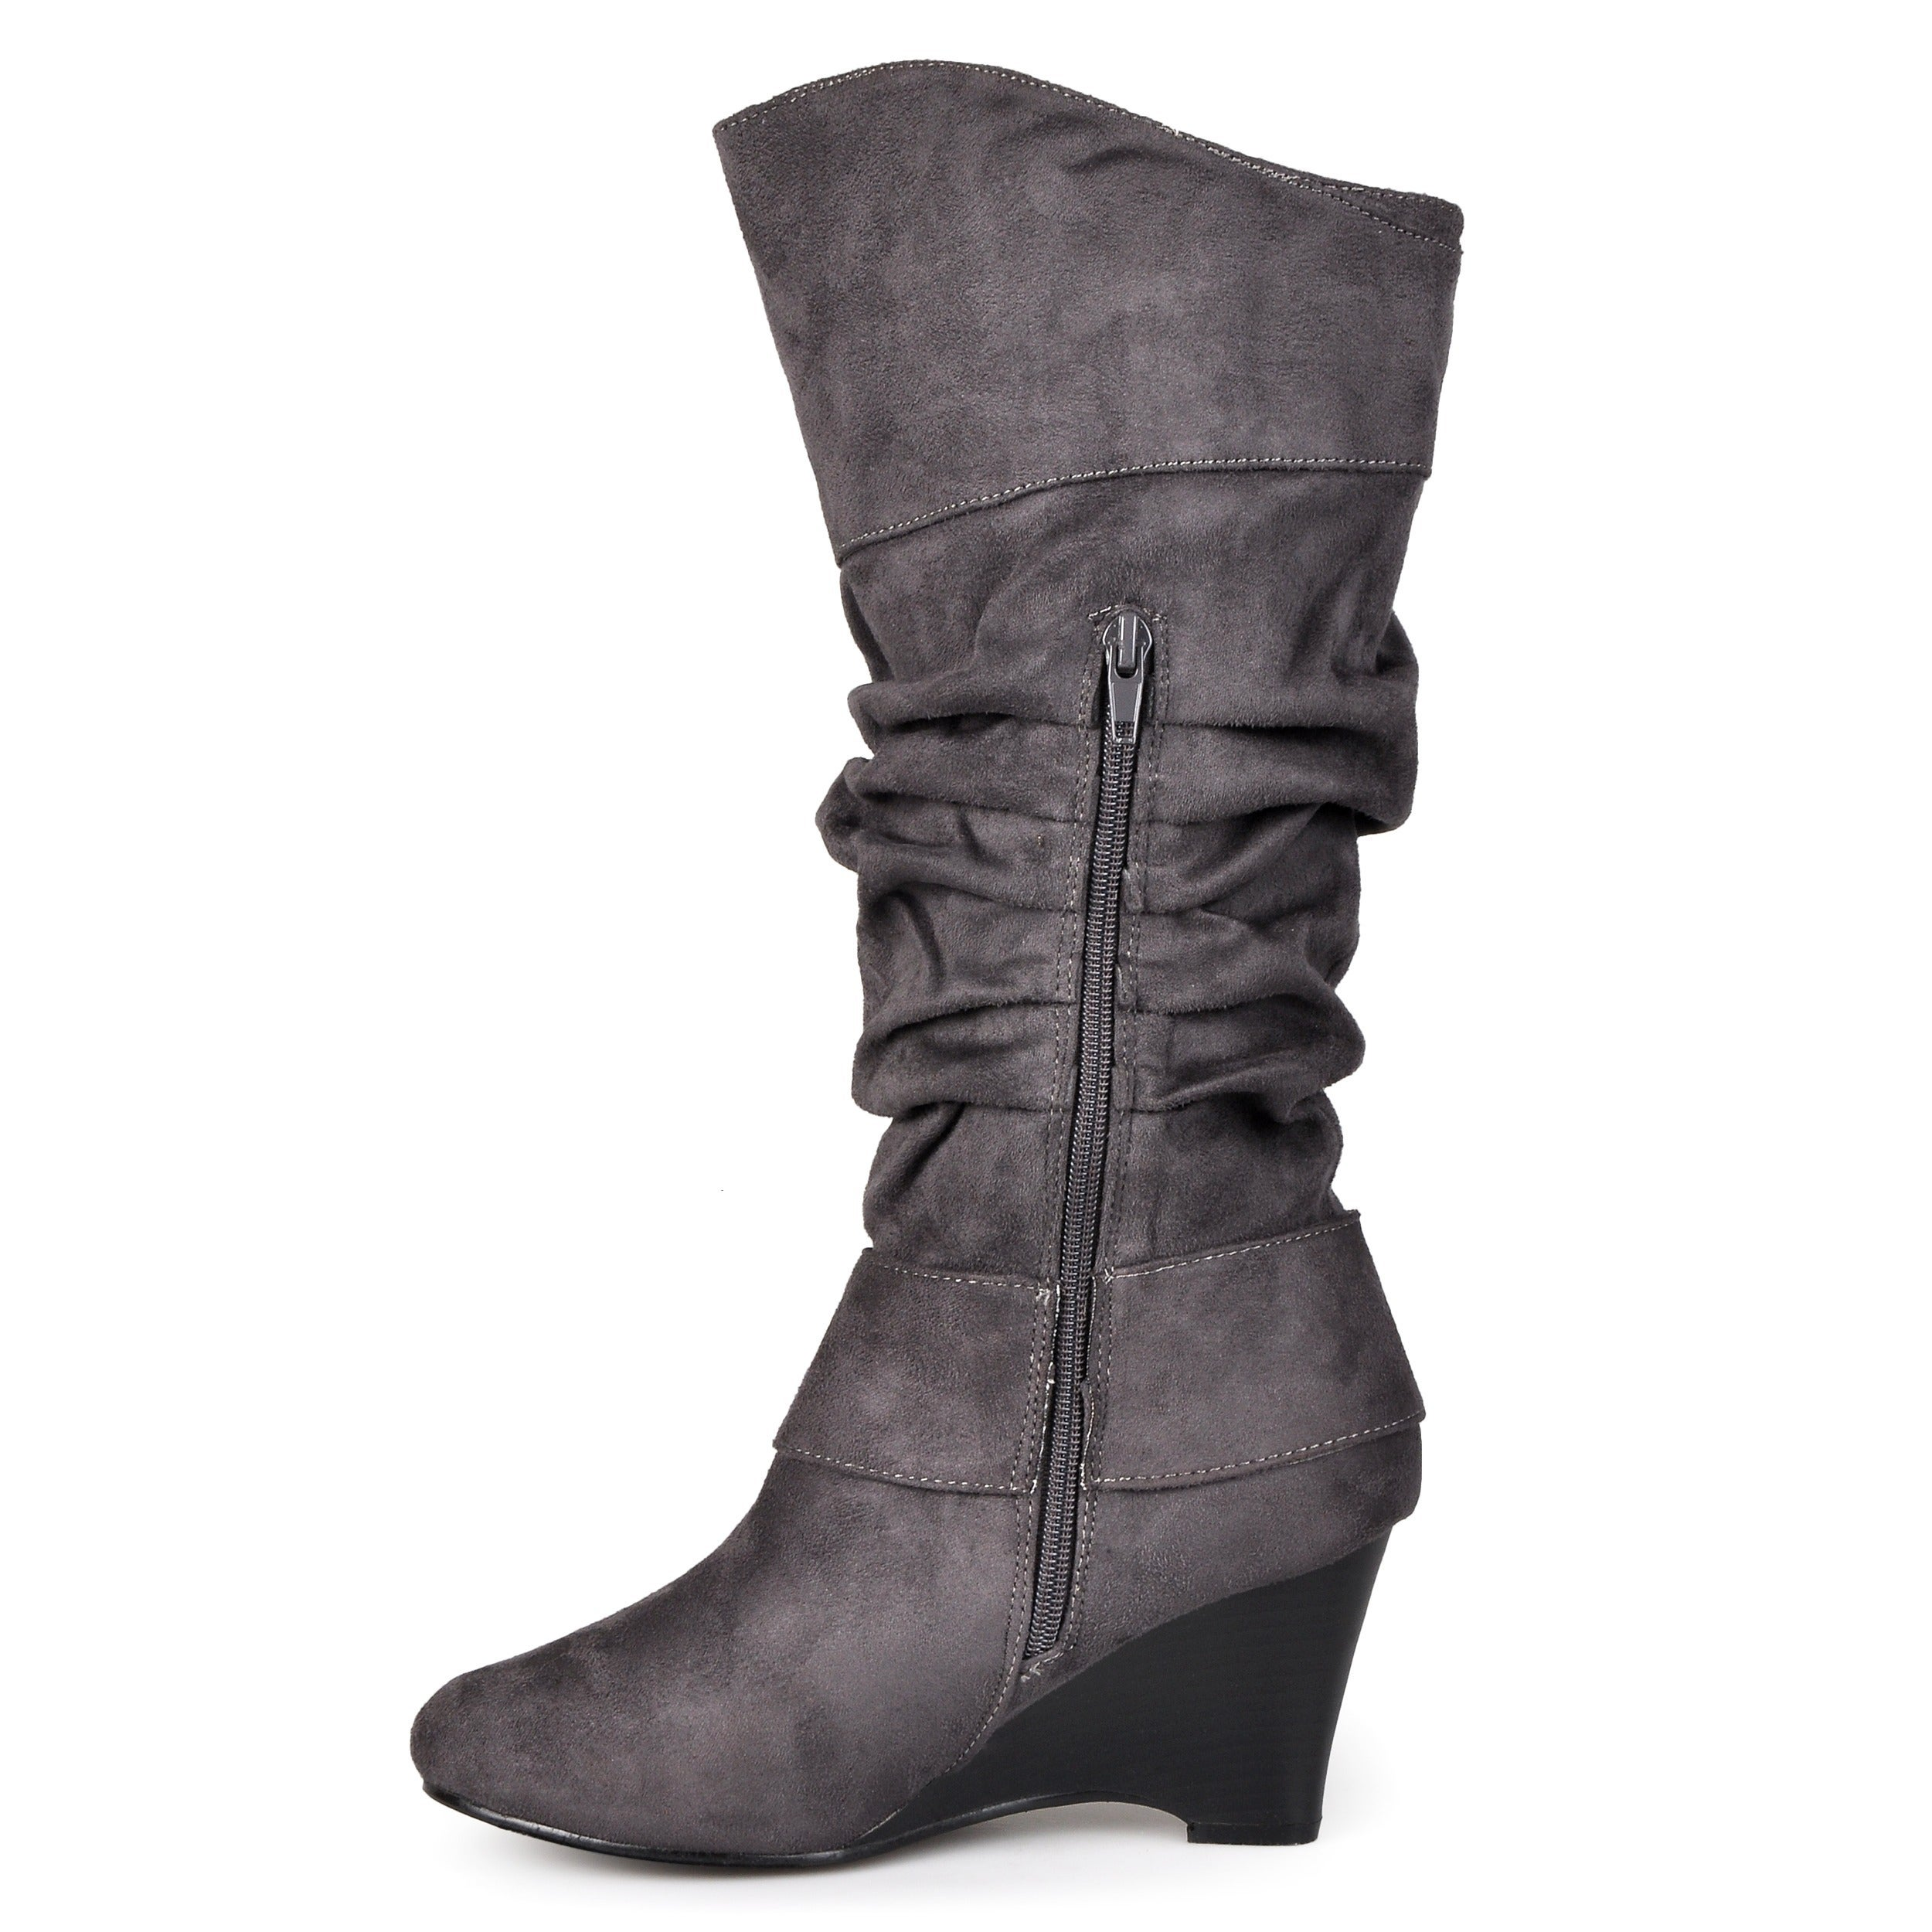 70f4c5bd01cd Shop Journee Collection Women's Regular and Wide-Calf 'Irene-1' Buckle  Slouch Wedge Knee-High Boots - Free Shipping Today - Overstock - 5162852